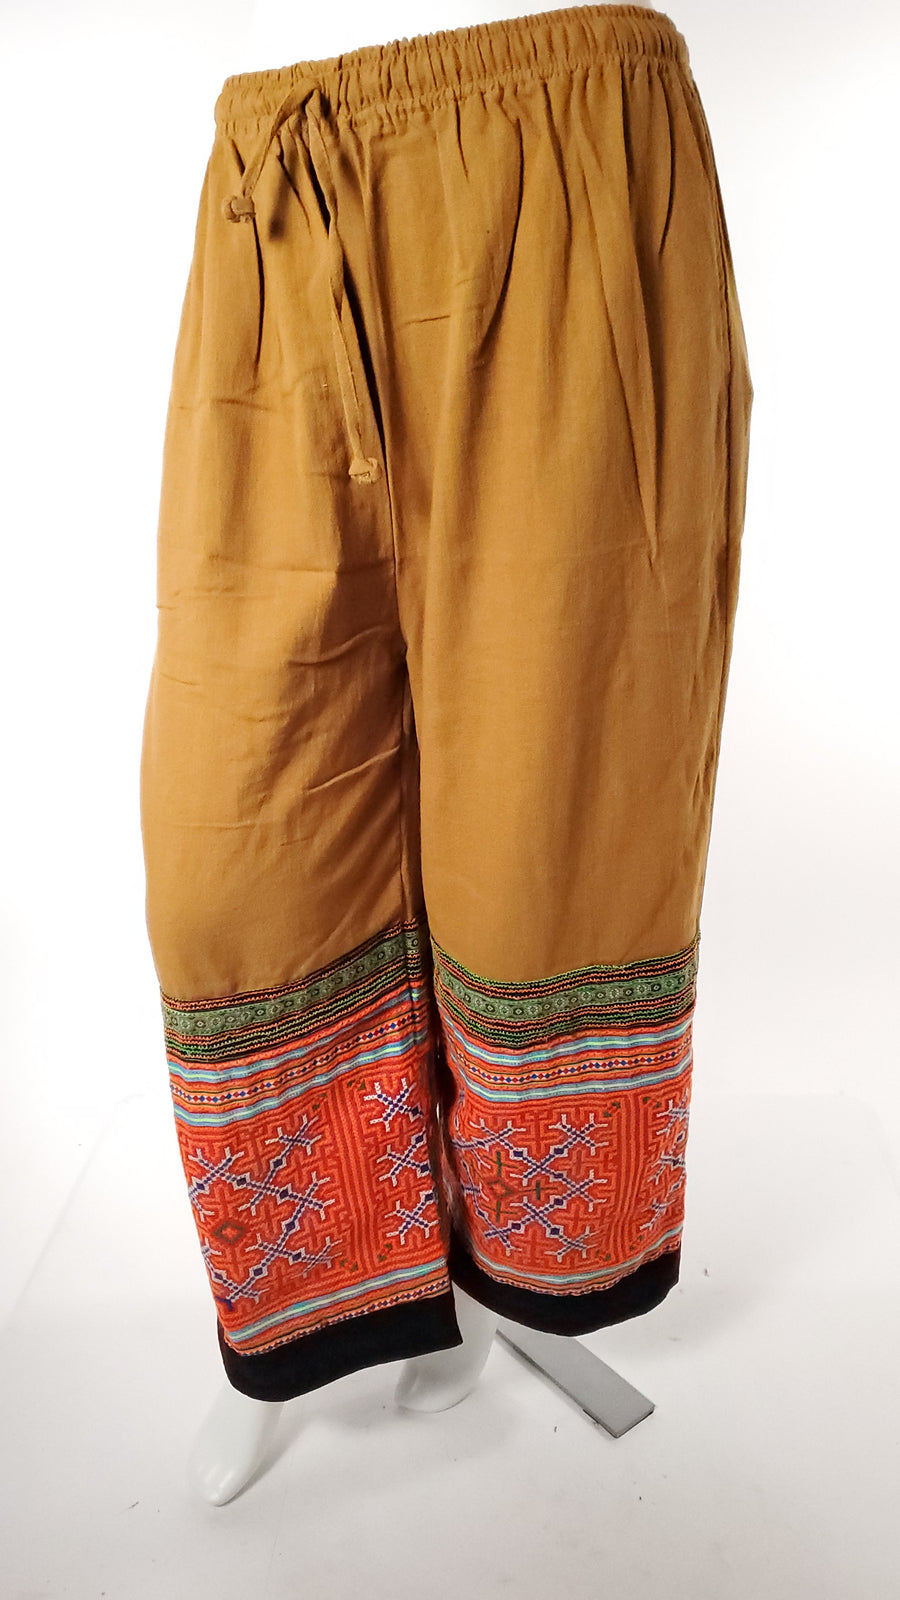 Upcycled Tribal Fabric Pants in Mustard-The High Thai-The High Thai-Yoga Pants-Harem Pants-Hippie Clothing-San Diego